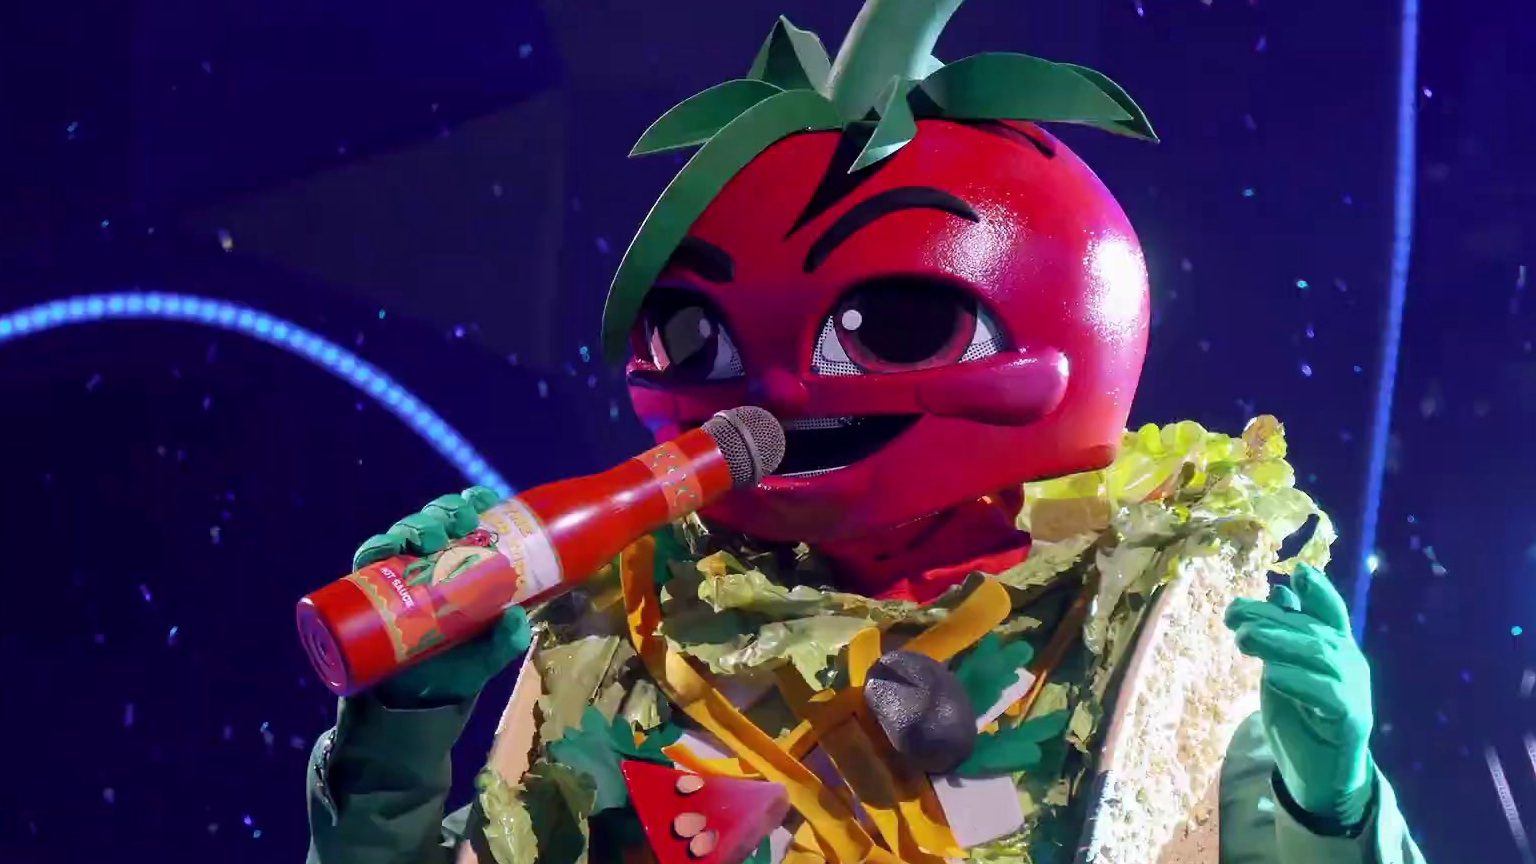 The Masked Singer: Advice To Future Masked Singers